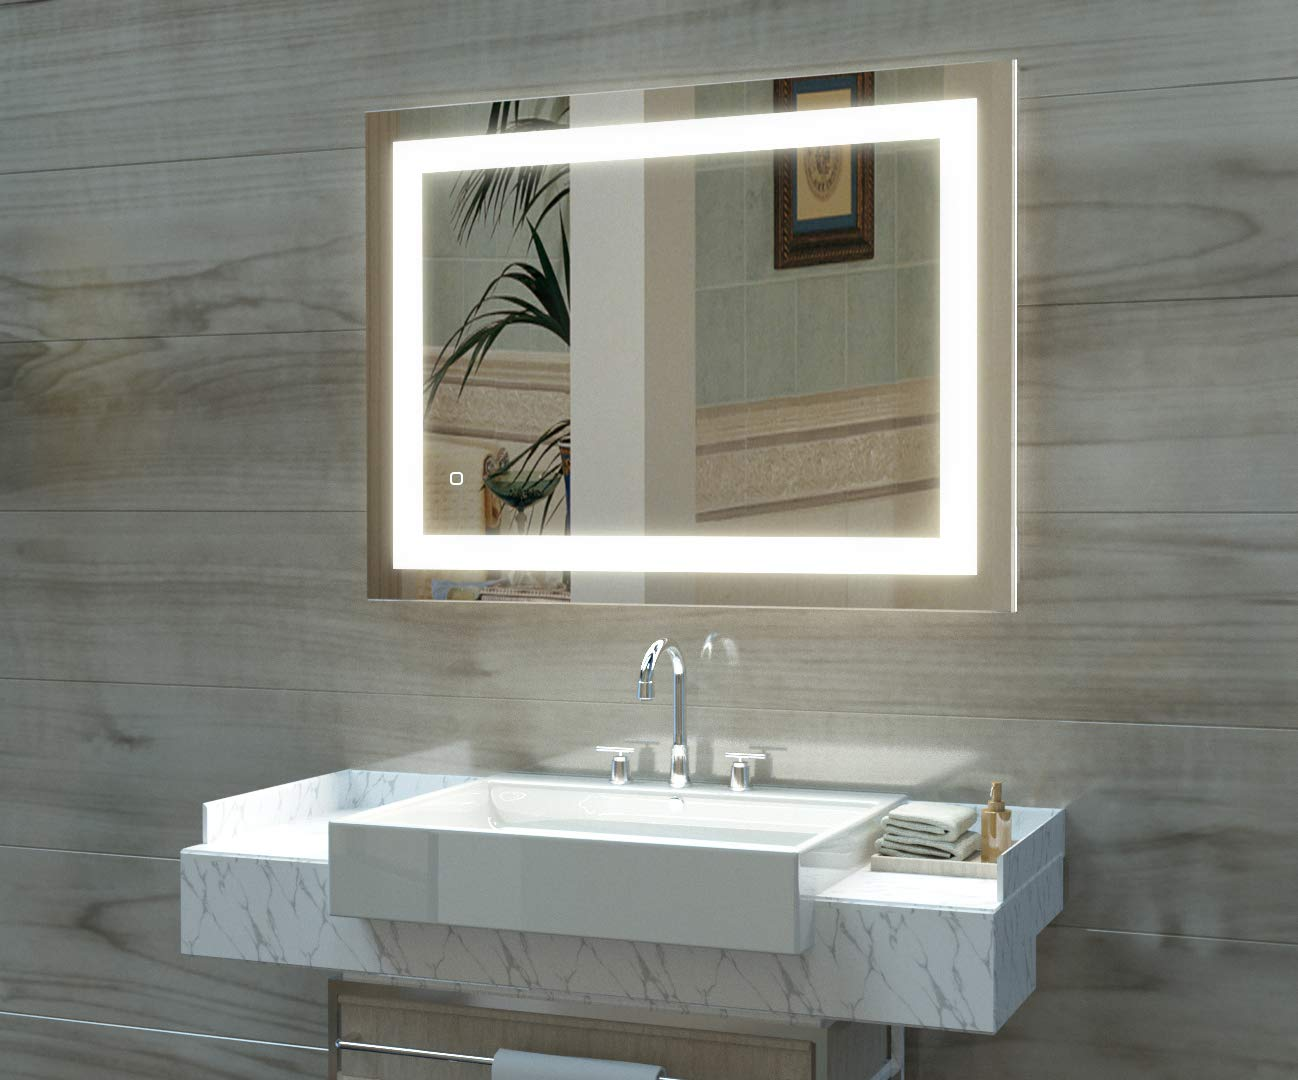 HAUSCHEN 36 x 28 inch LED Lighted Bathroom Wall Mounted Mirror with 5500K High Lumen + CRI>90 Cold White Lights and Anti Fog and Dimmable Memory Touch Button + IP44 Waterproof + Vertical & Horizontal